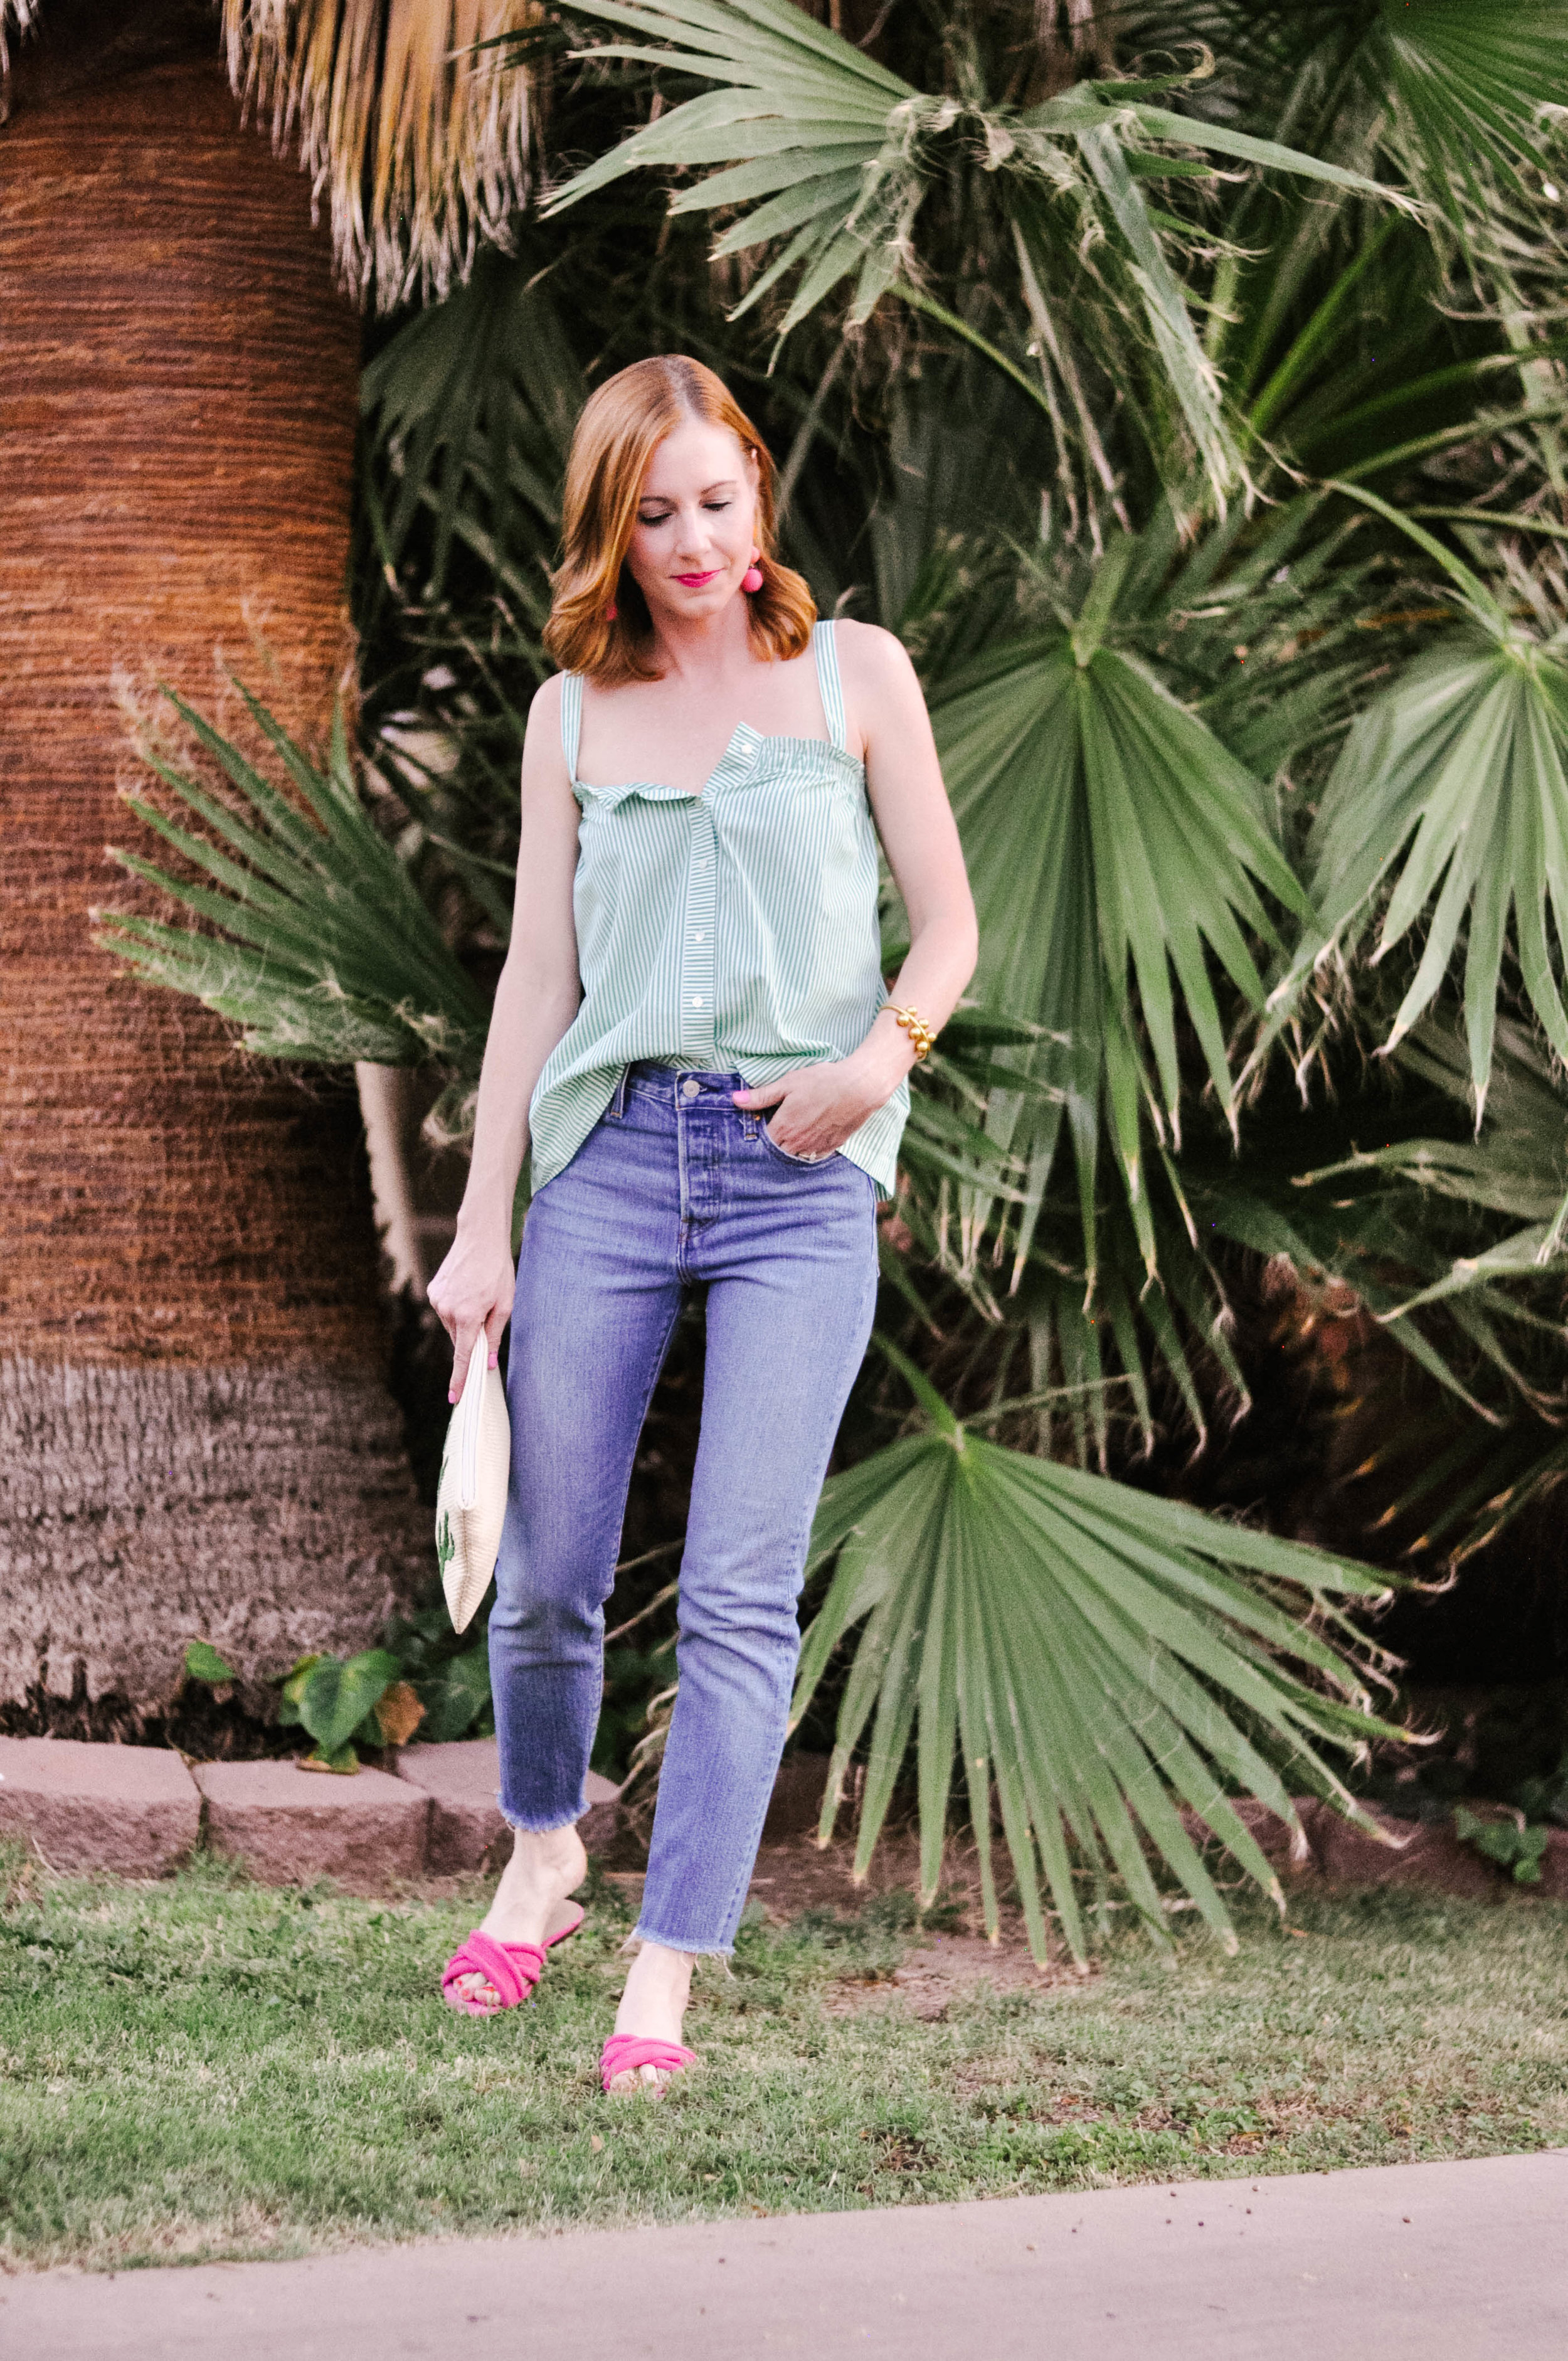 Woman Wearing J.Crew top and Levi's Jeans